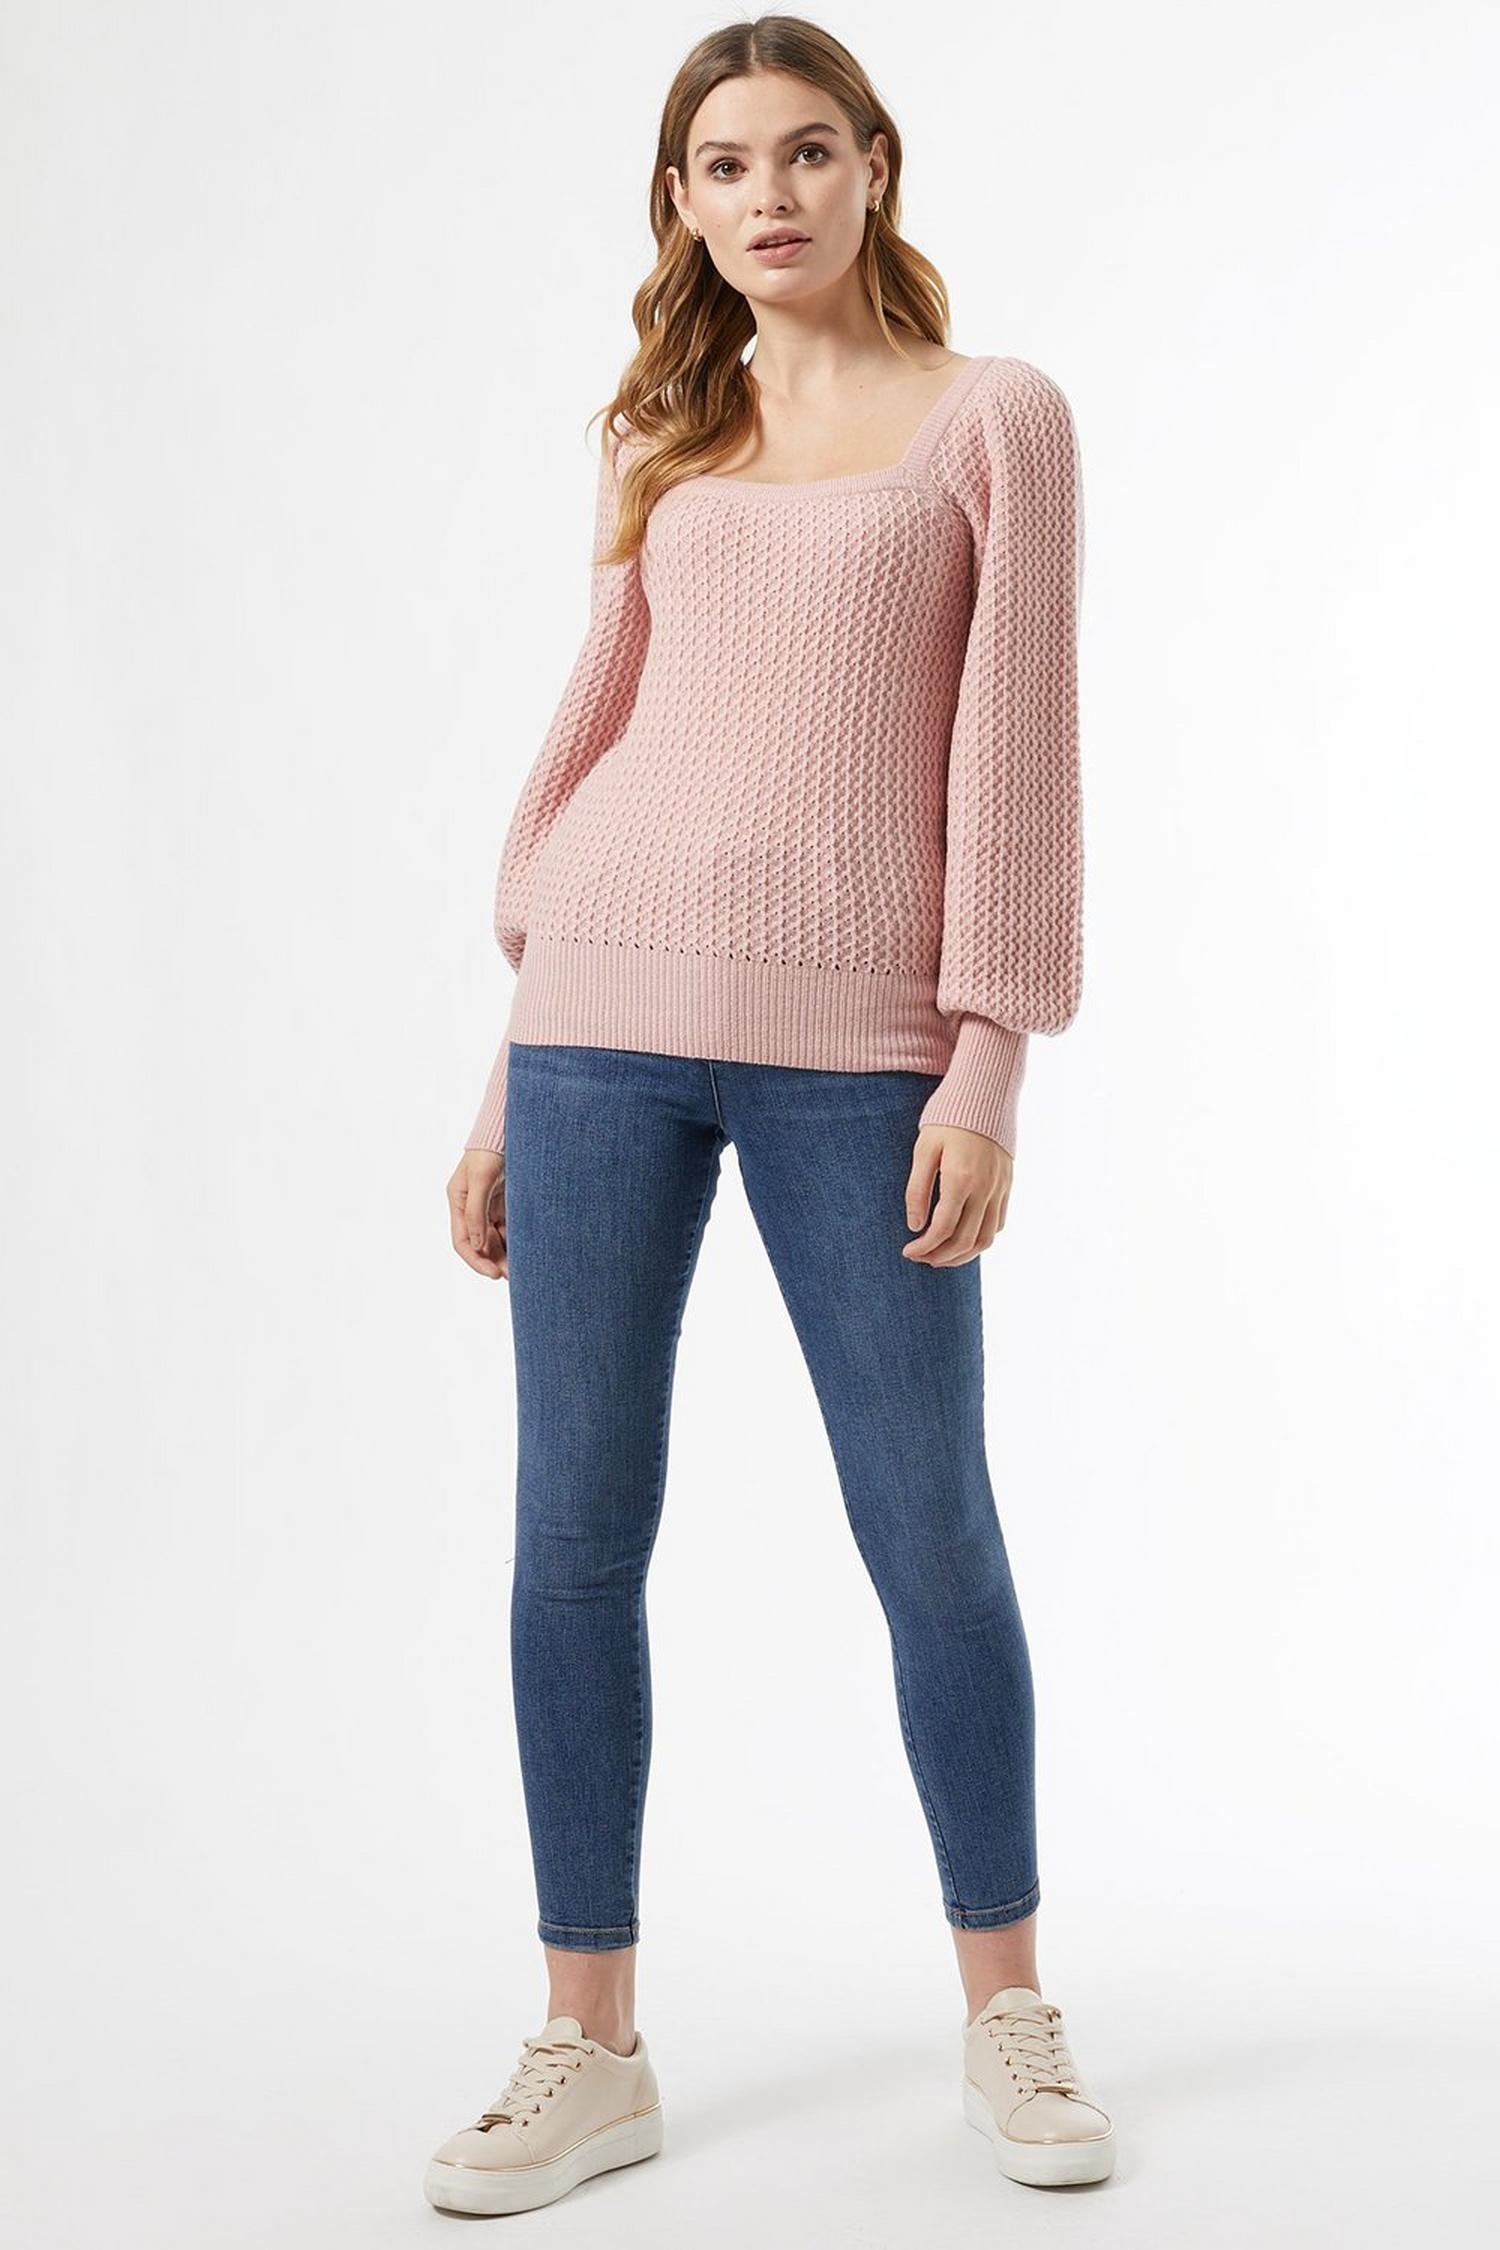 153 Blush Square Neck Jumper image number 3